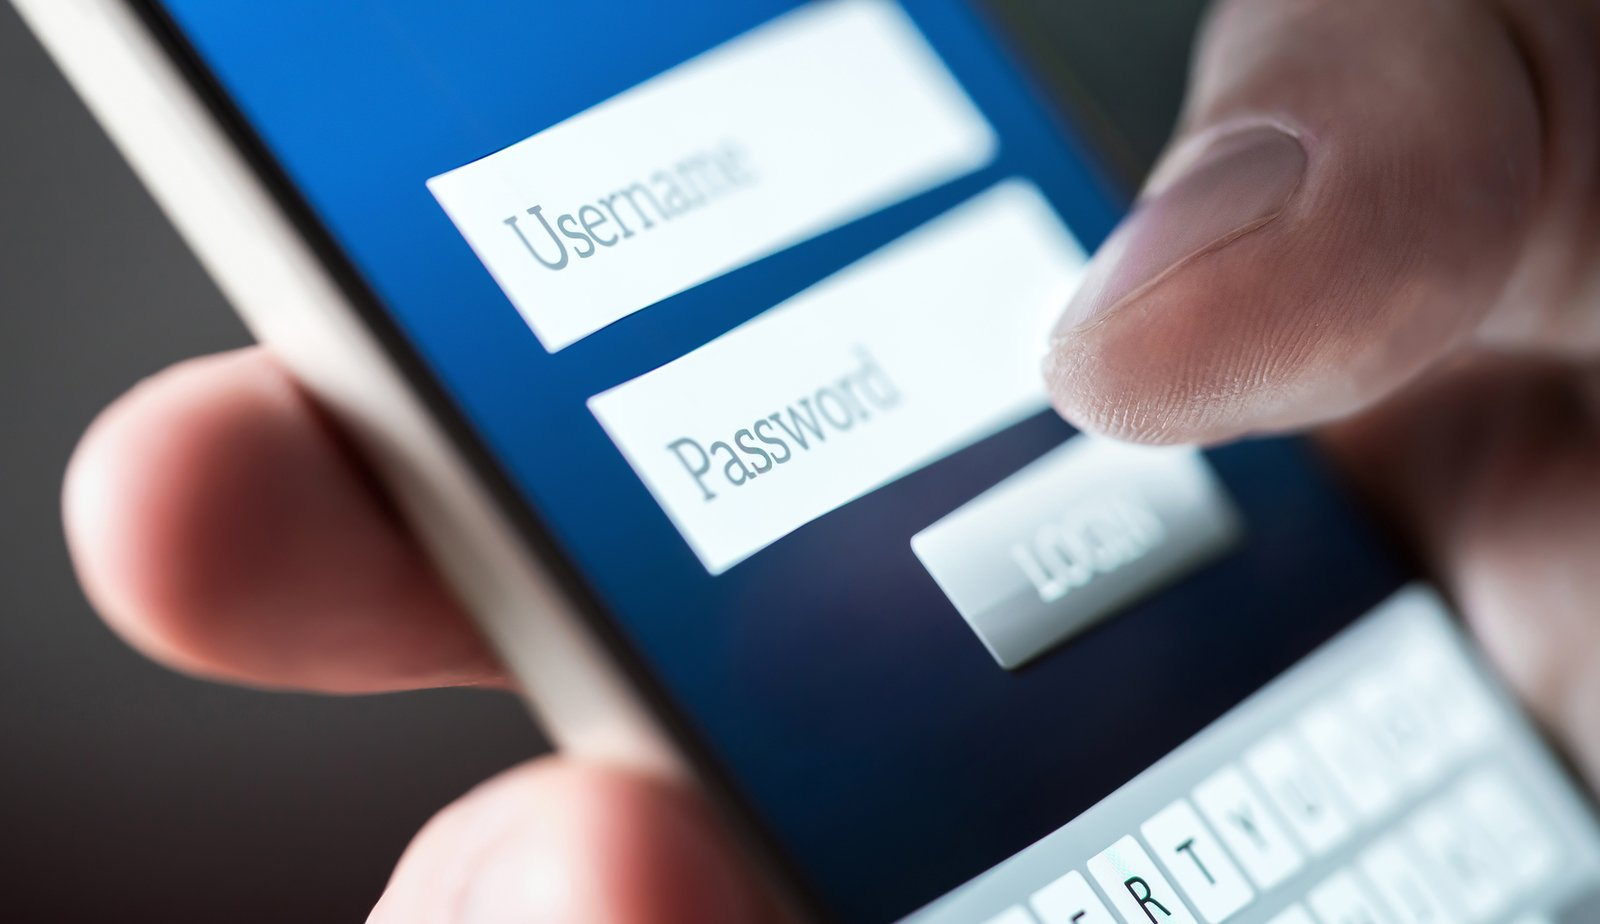 User logging in on a smartphone, example of fraud or identity theft.